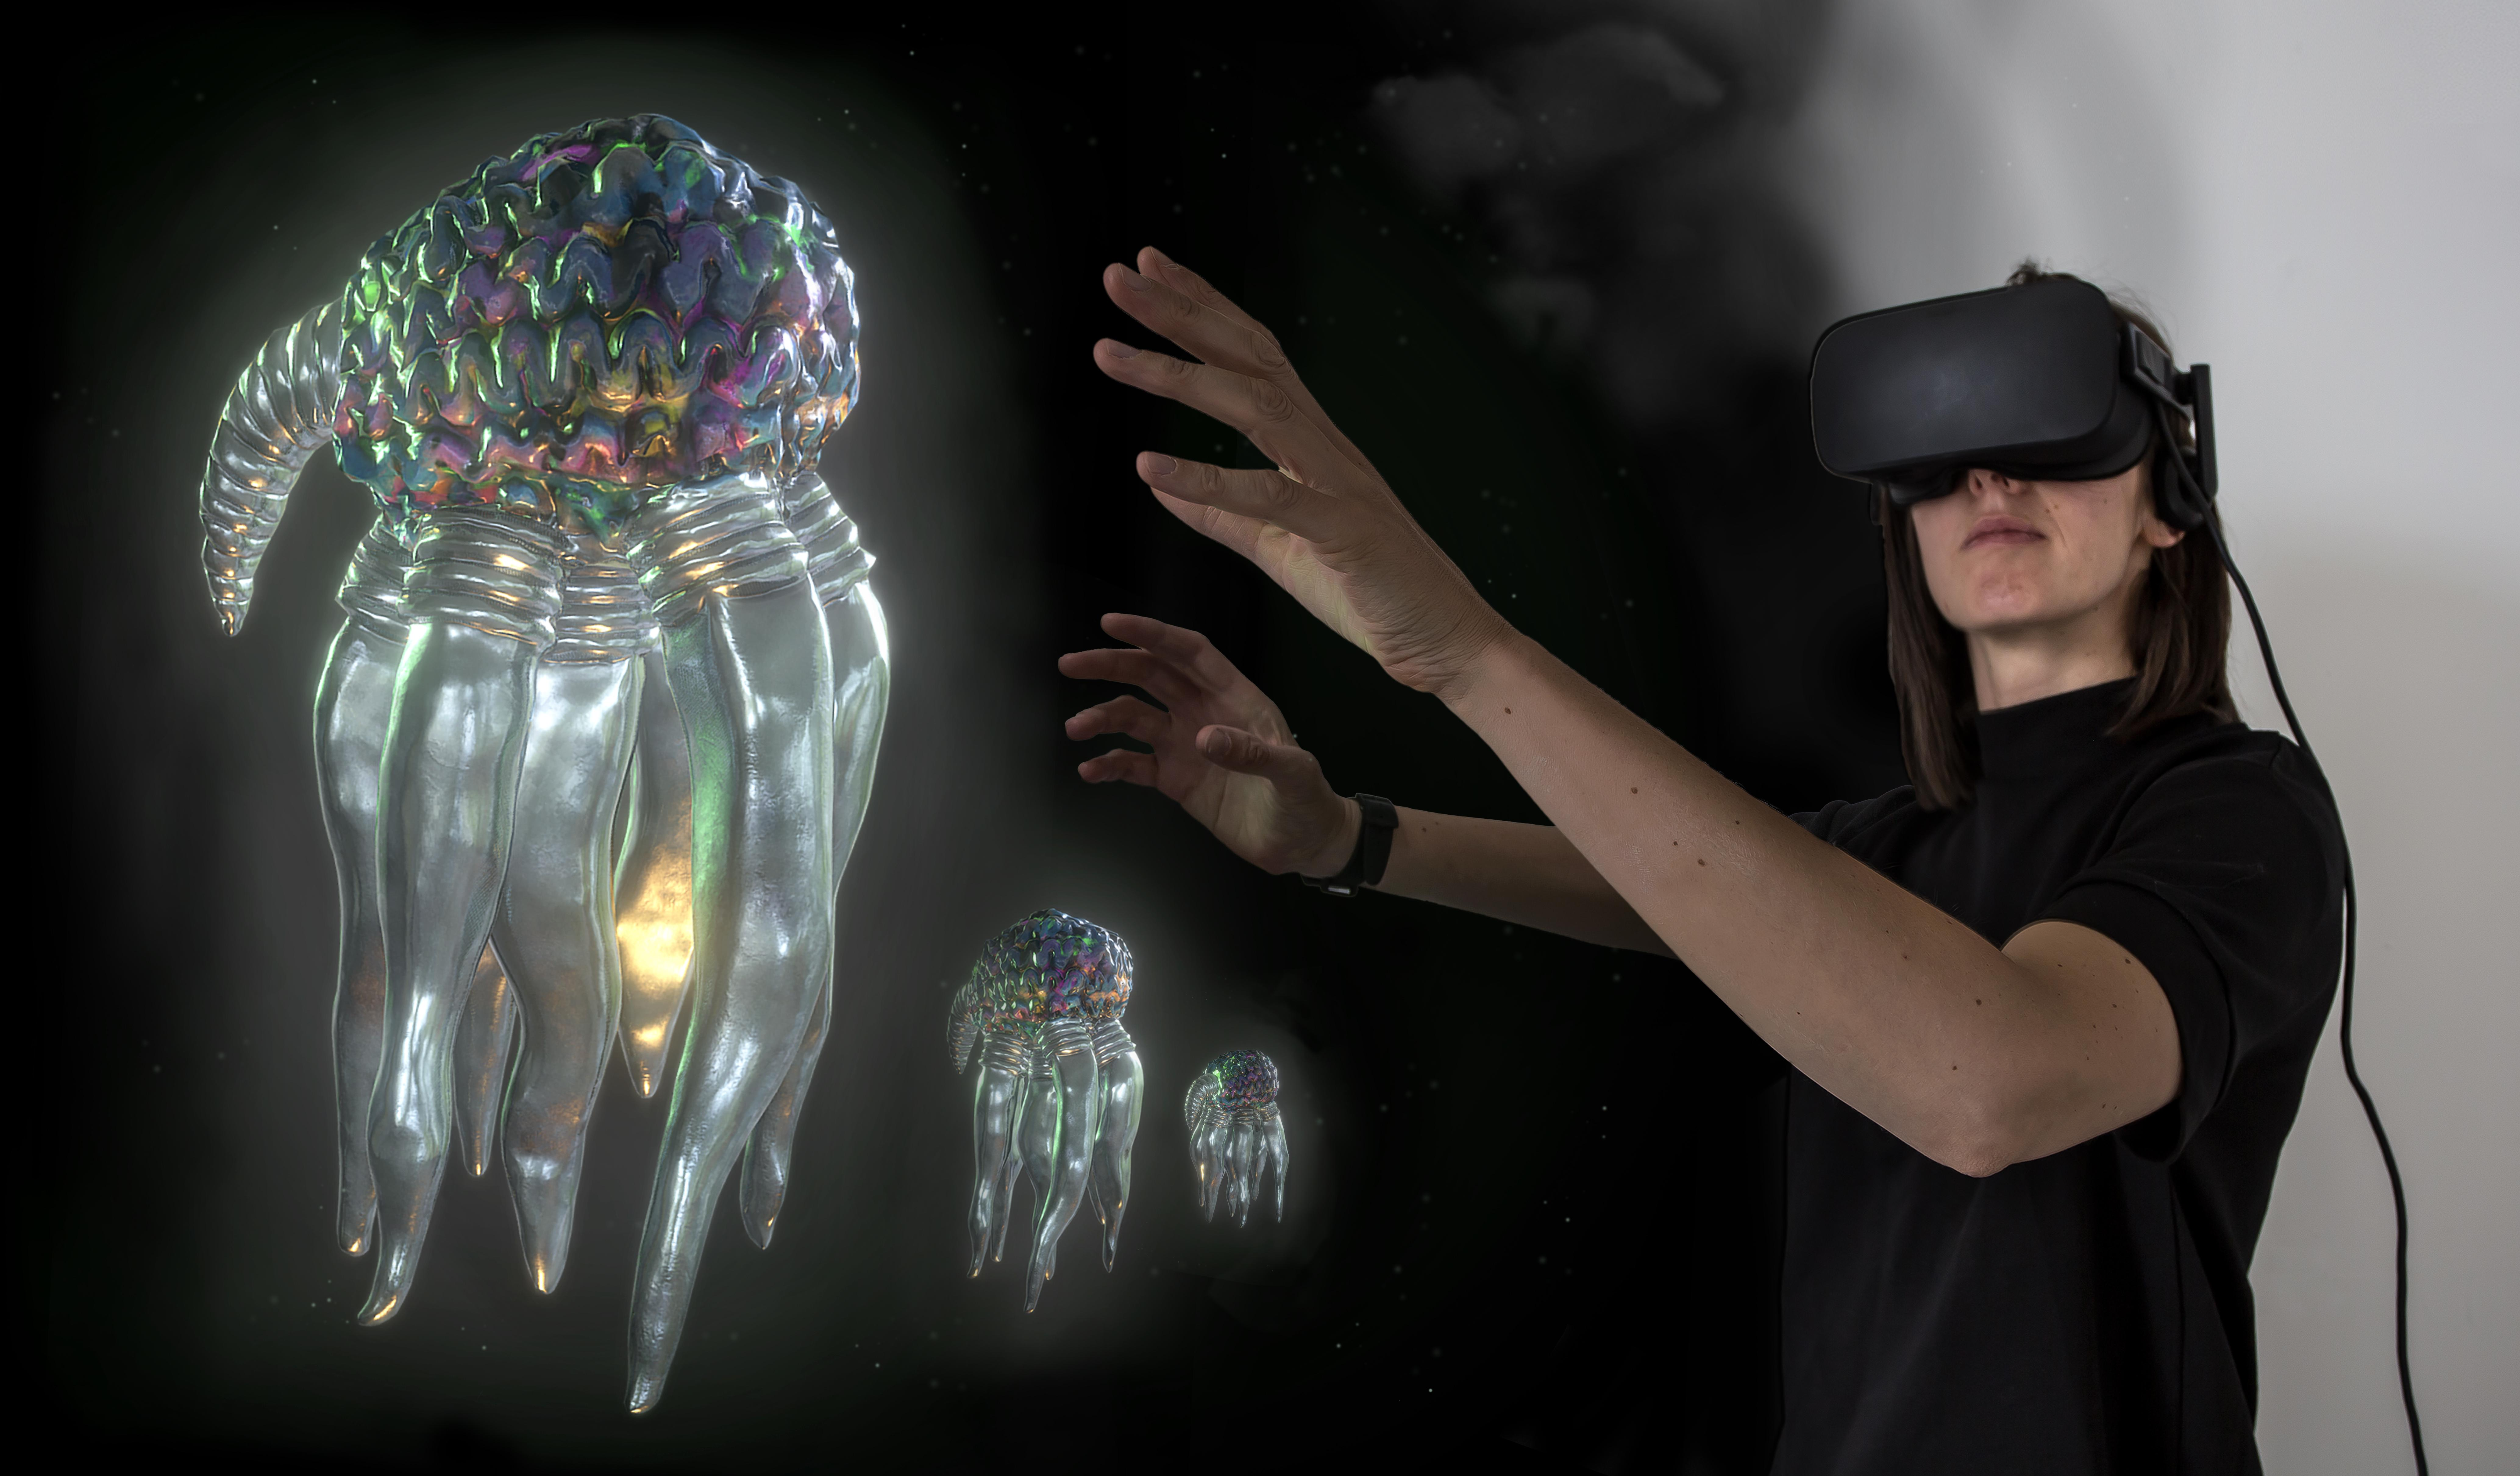 A stimulating VR experience that will take you on a simulated journey into the personified mind of 'Technology'. Listening to the inner dialogue of 'Technology's' mind as it replays both sides of a lovers' quarrel.